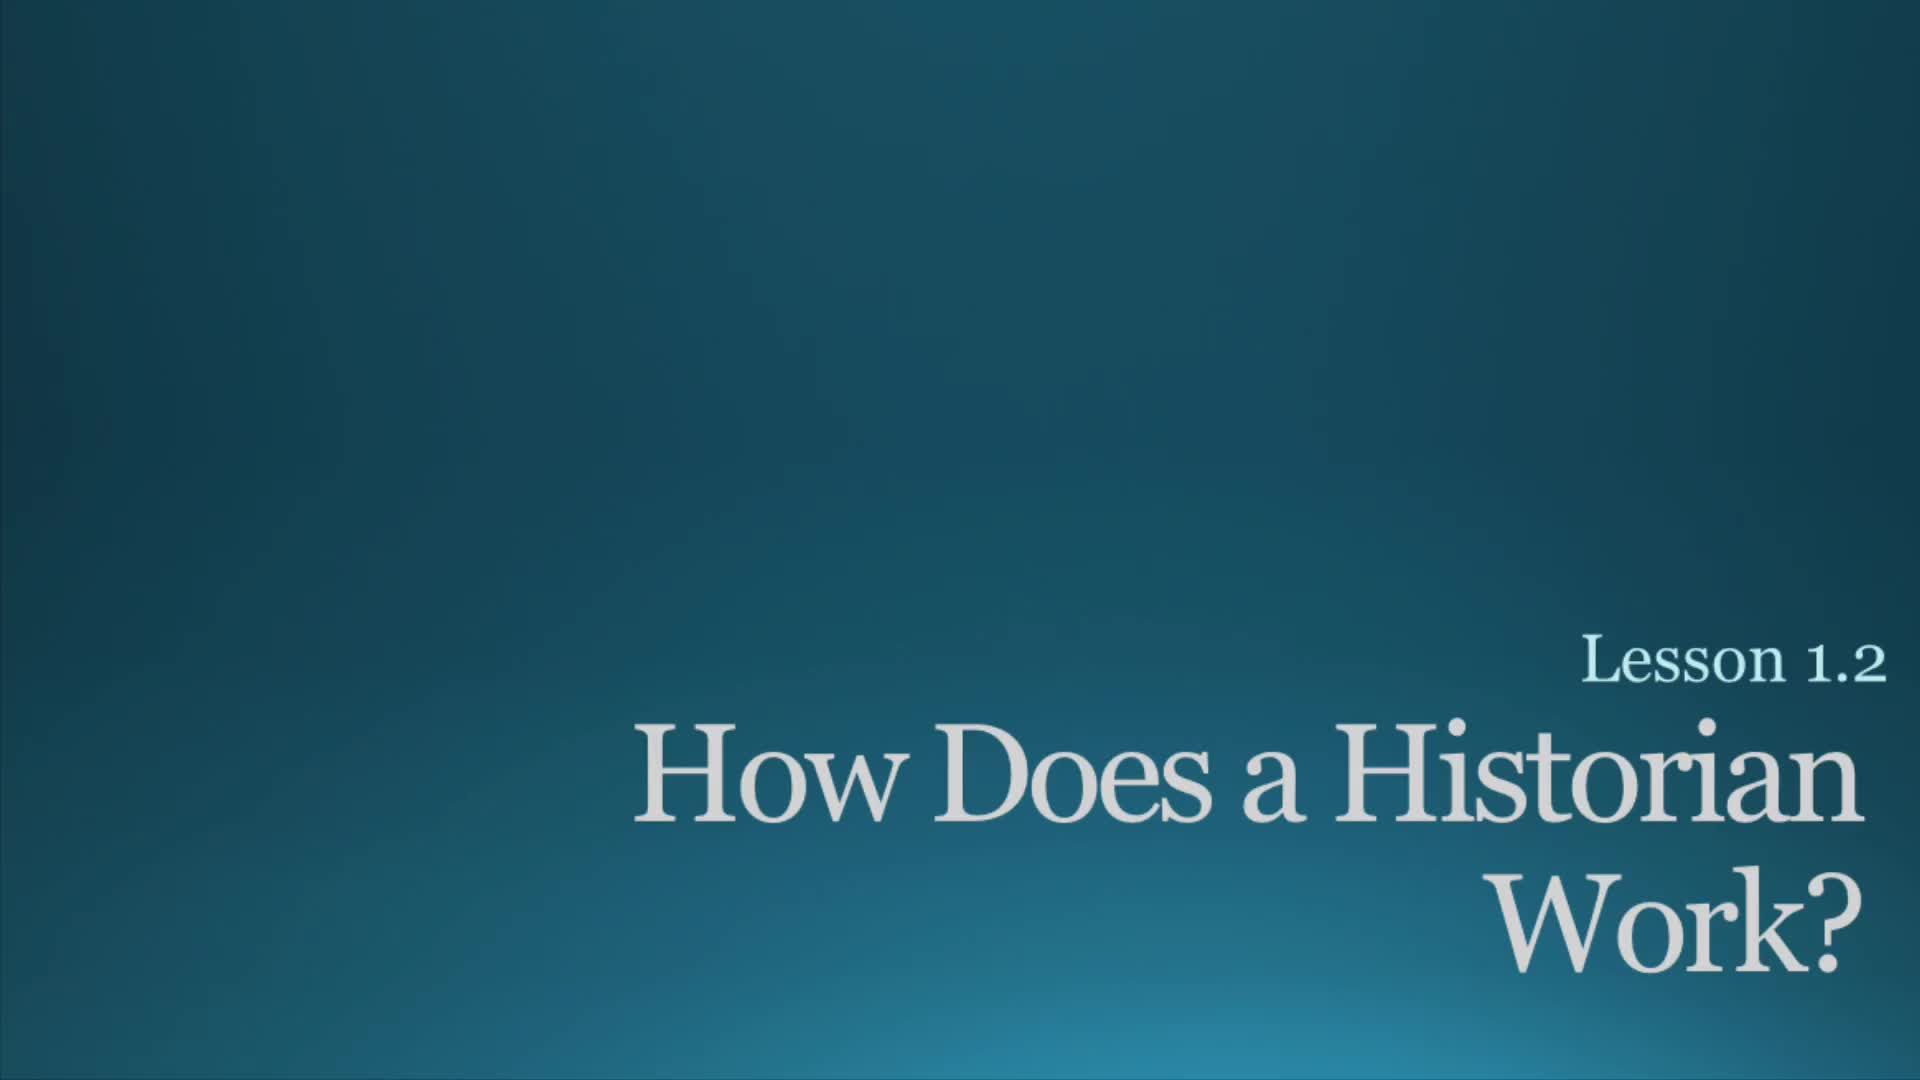 How does a historian work? Chapter 1, lesson 2